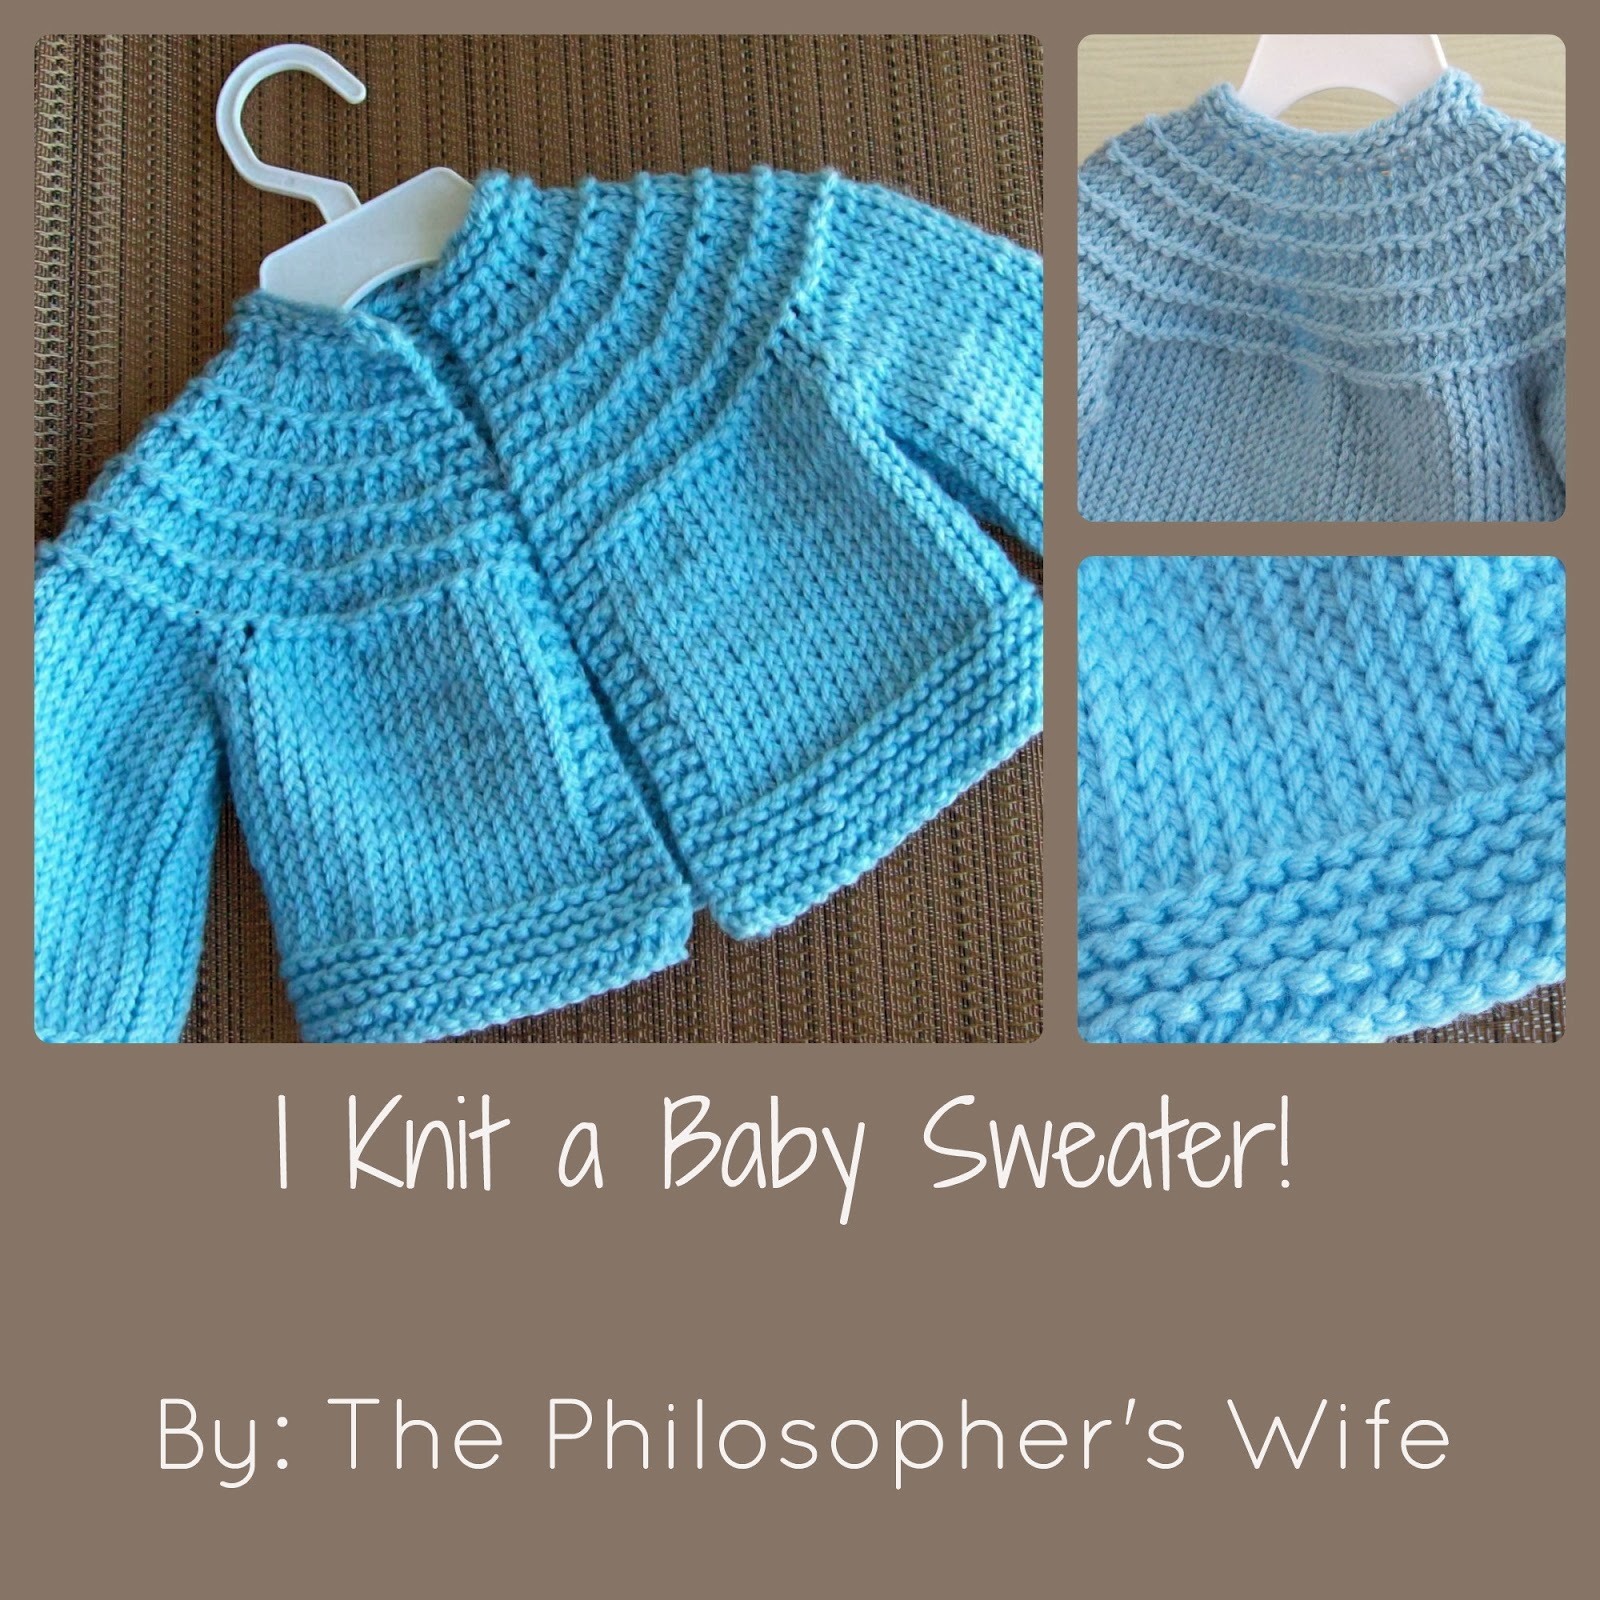 Baby Pullover Sweater Knitting Pattern : The Philosophers Wife: I Knit a Baby Sweater! (Including a Link to the P...